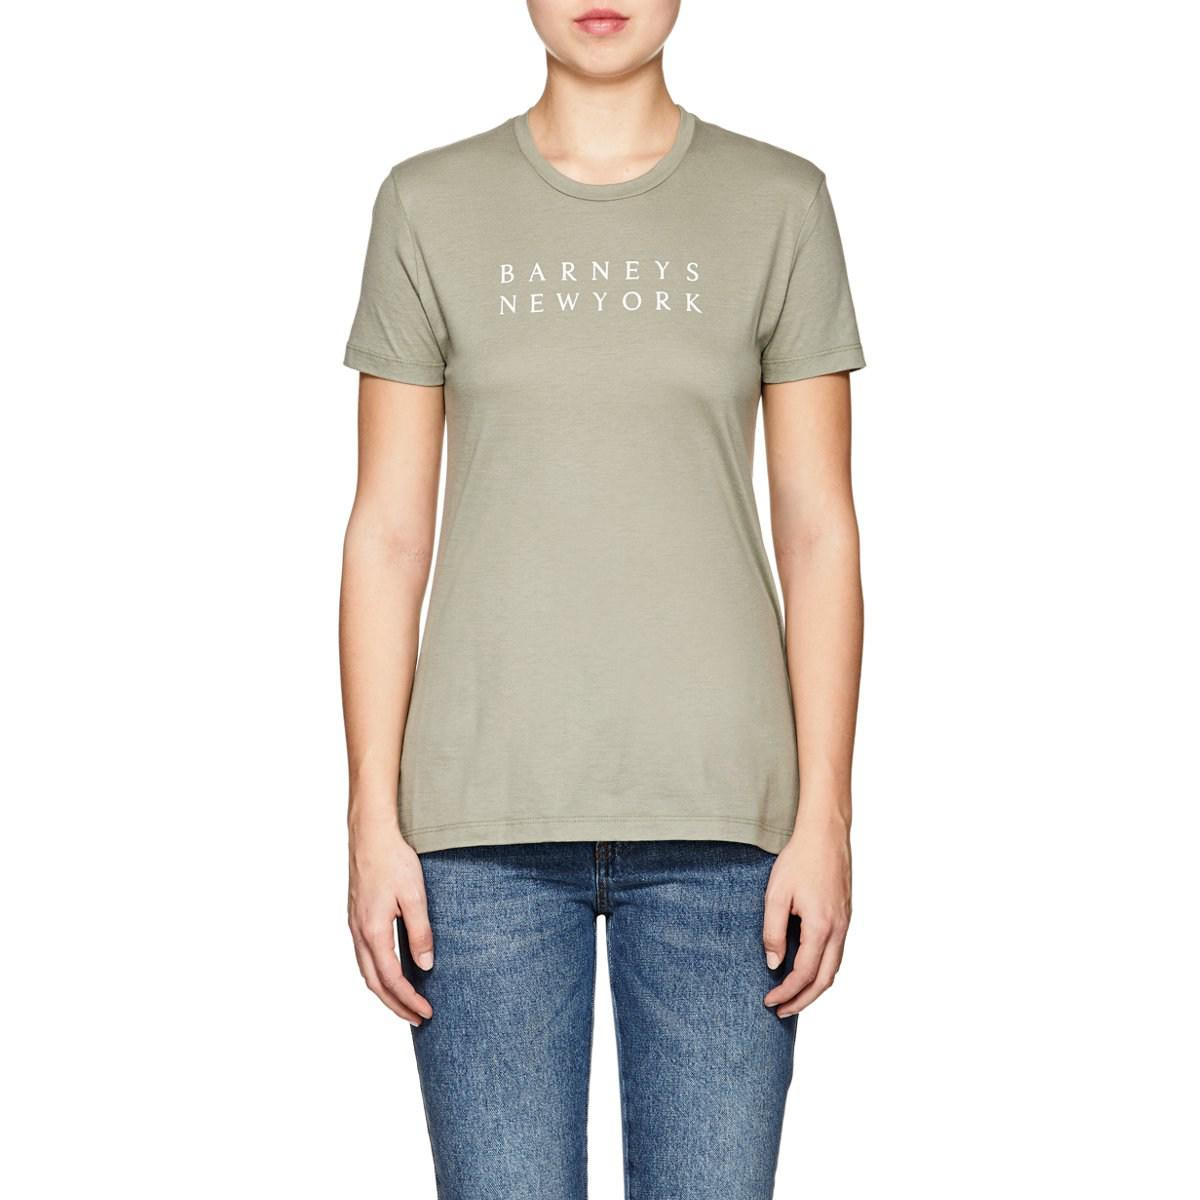 64837ab4bf barneys-new-york-Dk-Green-Logo-Pima-Cotton-T-shirt.jpeg